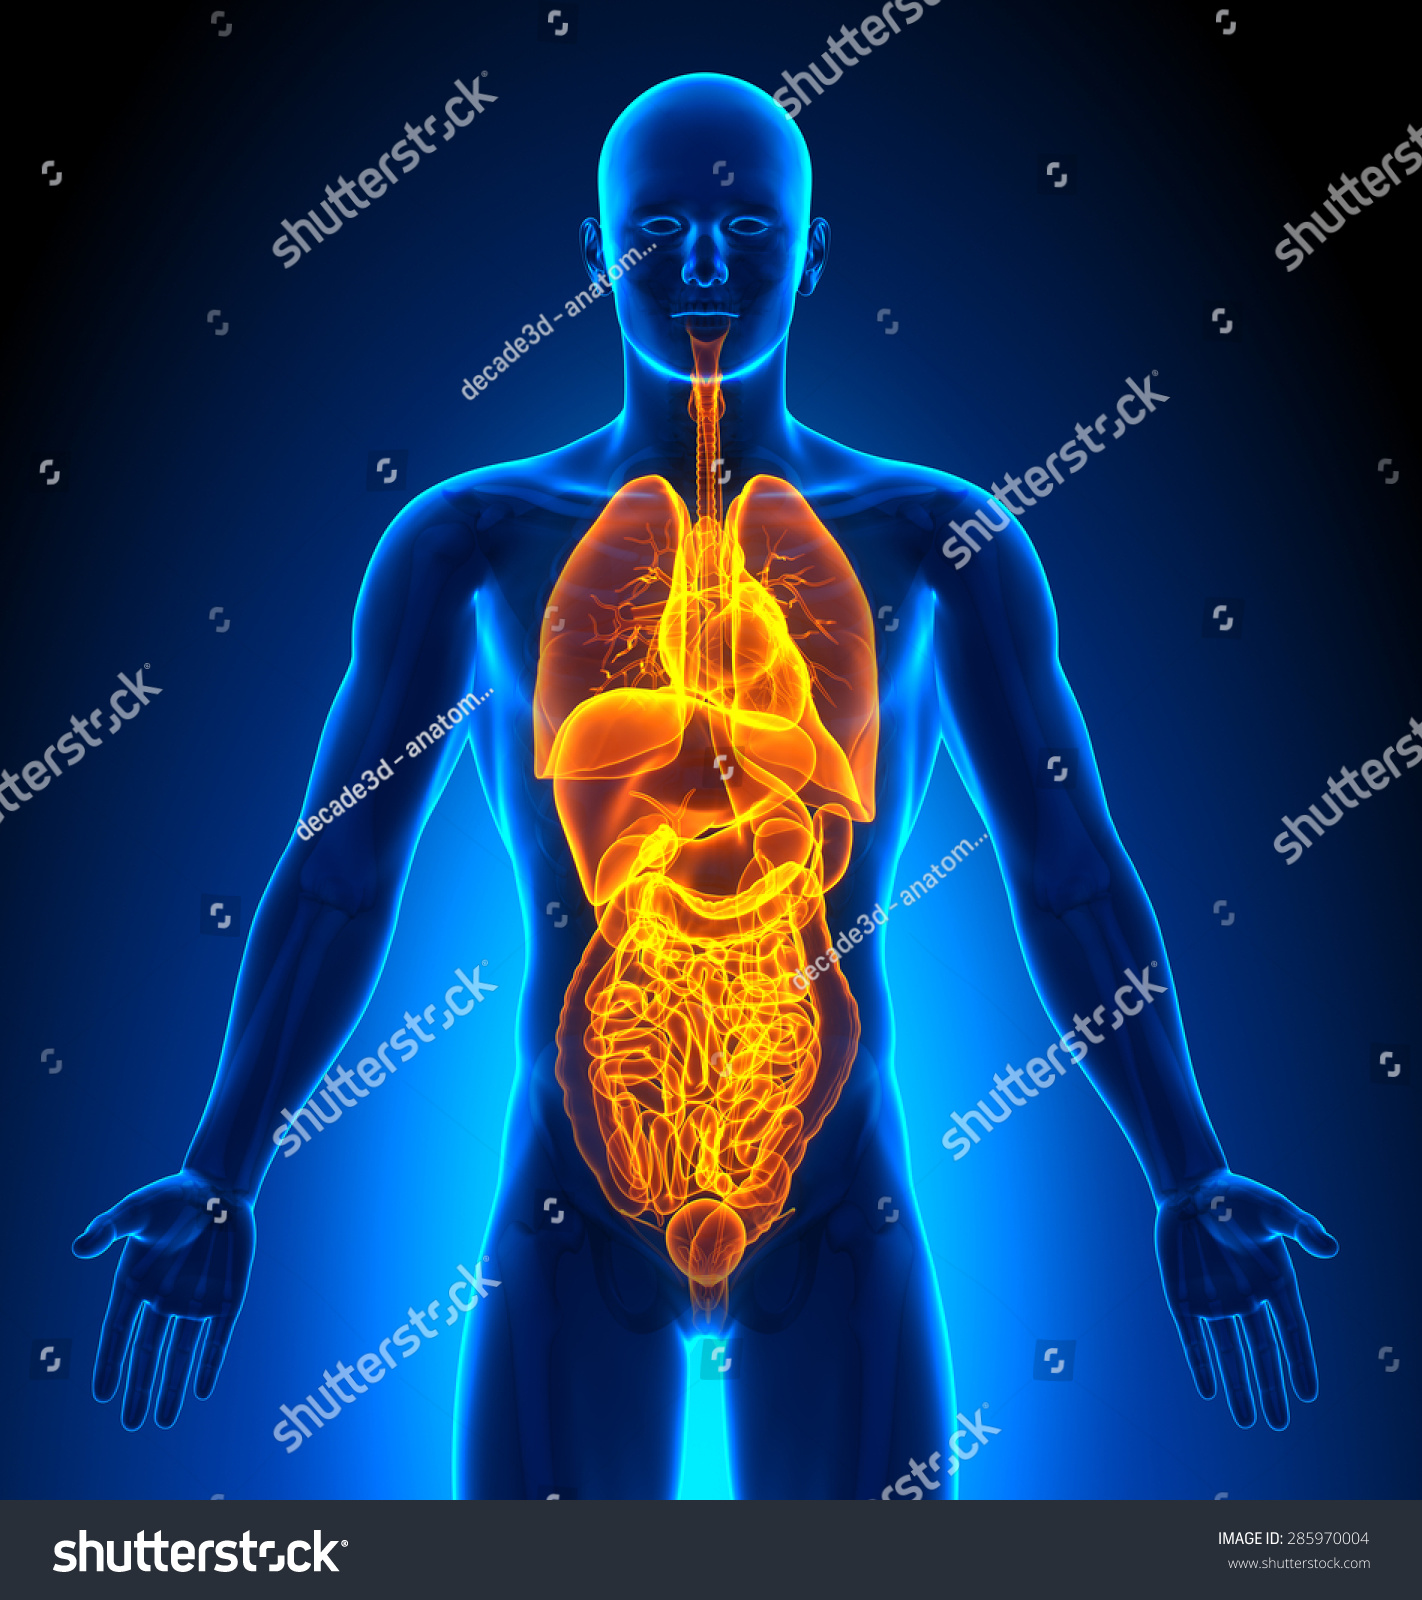 Internal Organs Male Organs Human Anatomy Stock Illustration ...